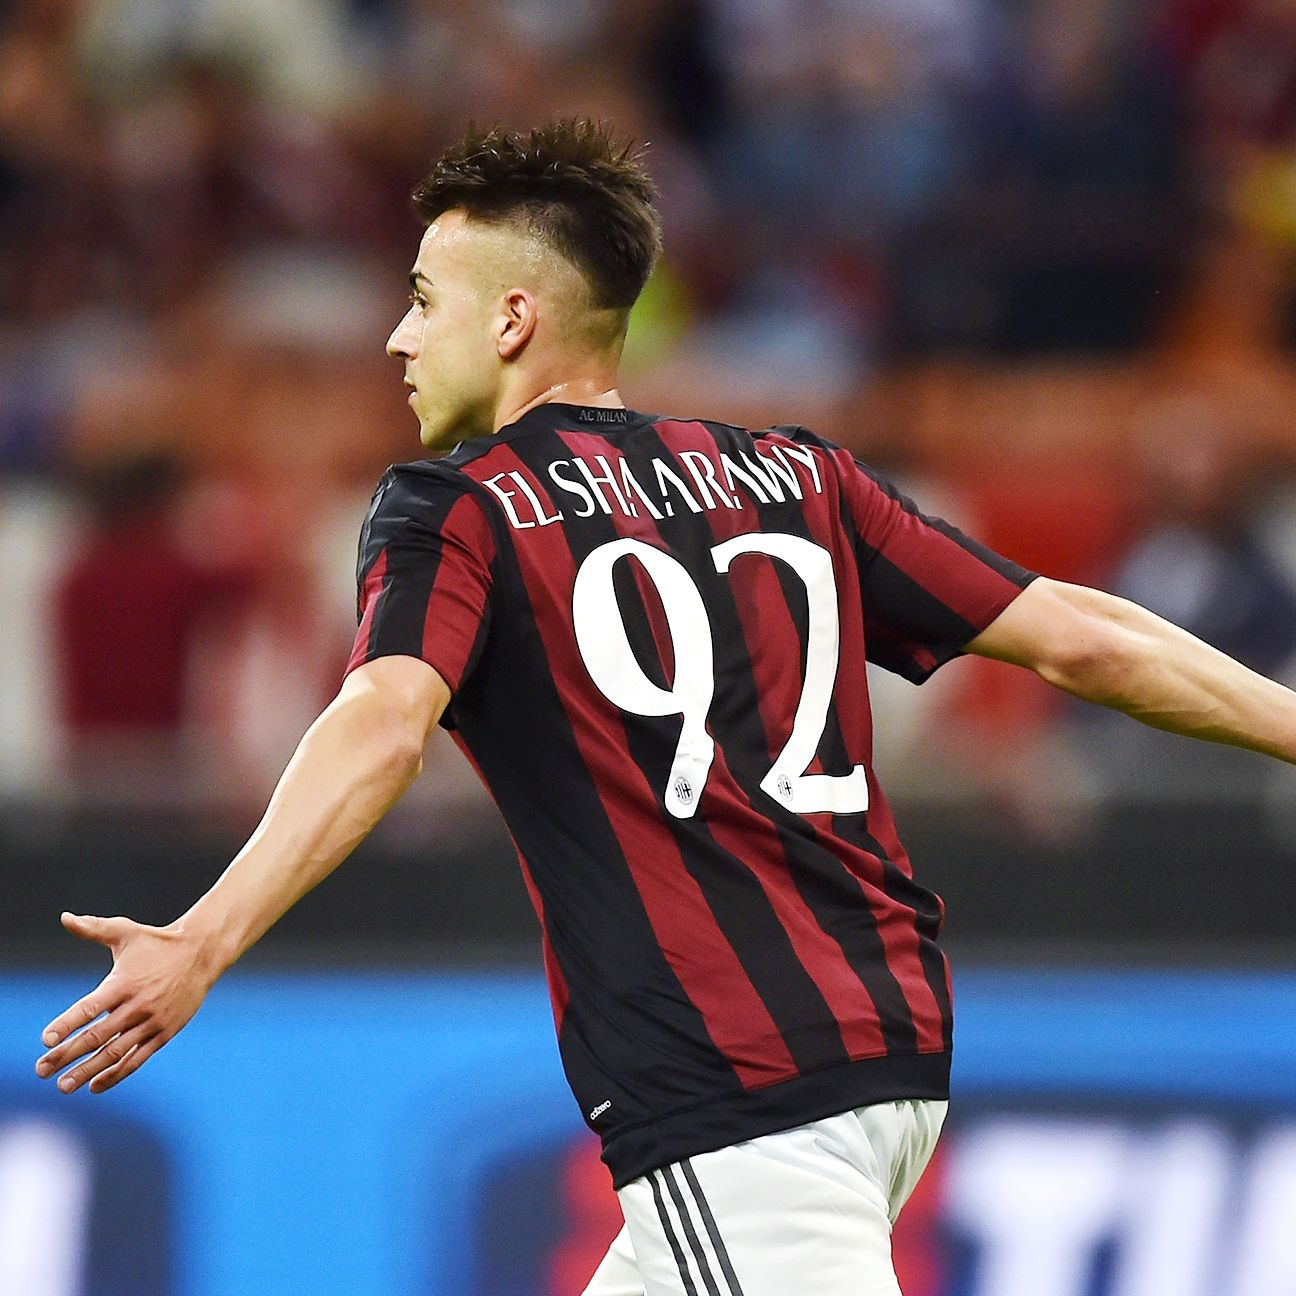 Stephan El Shaarawy's brace offers hope for better things in 2015-16 for Milan.